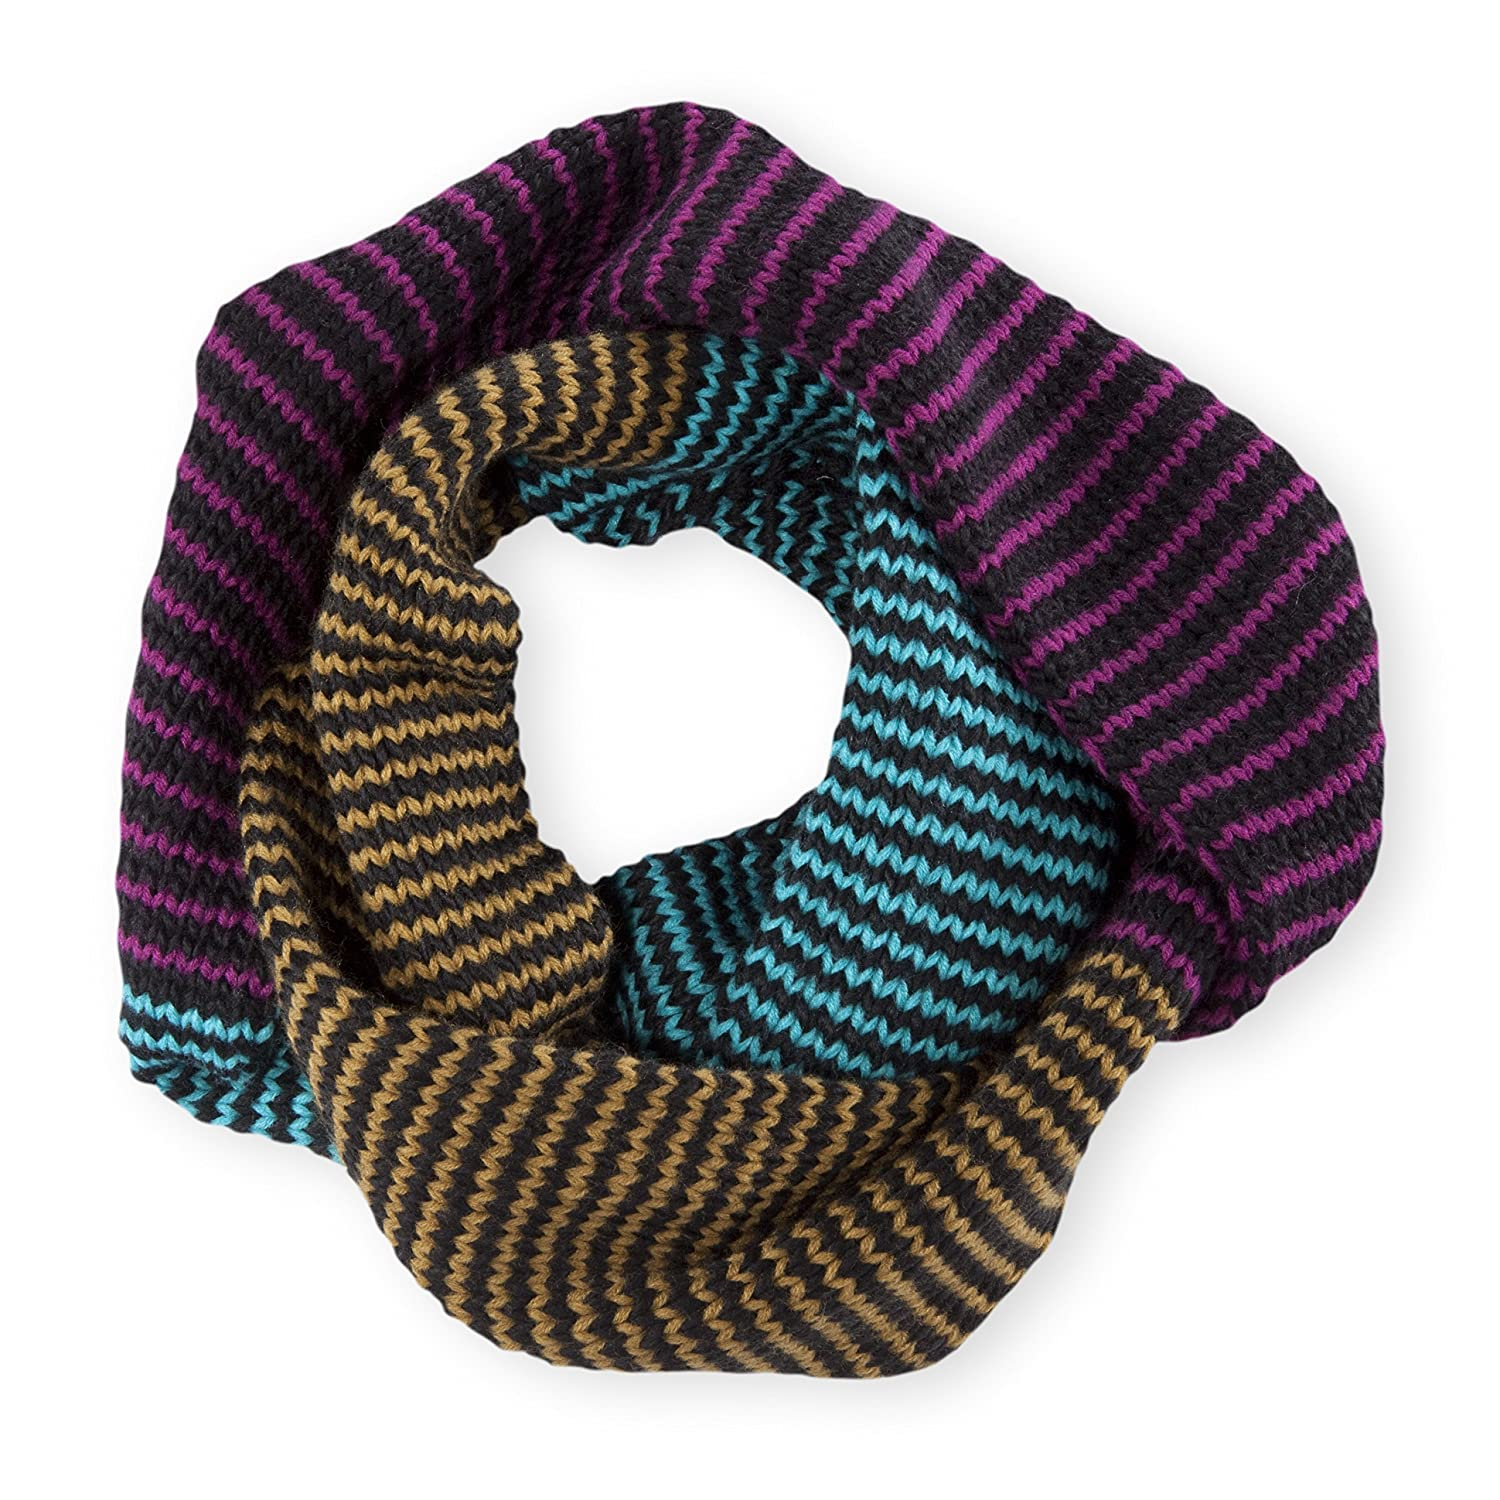 t original snood shirt scarf turquoise jersey circle product loop eternity infinity tube